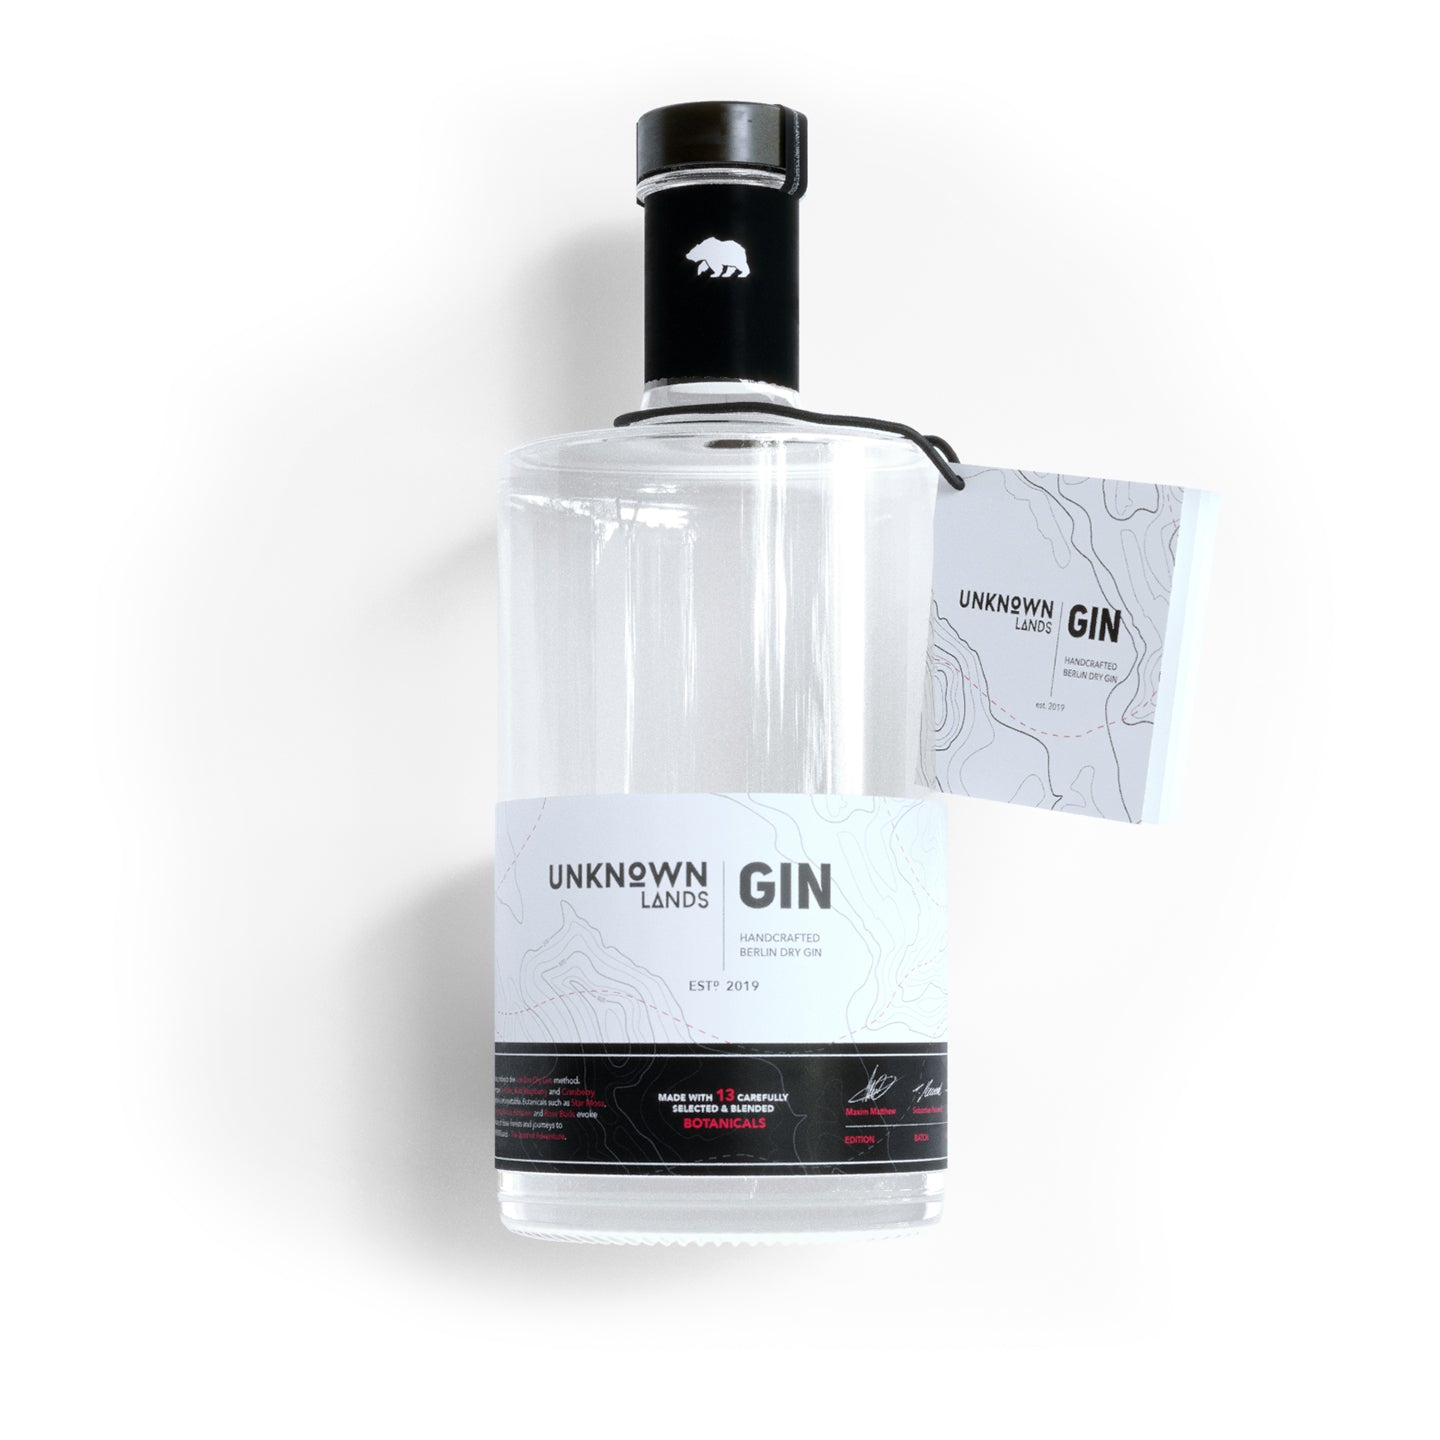 Double Trouble Pack - UNKNOWN Lands | Classic Gin & Devil's Peak Gin - 2x 500ml